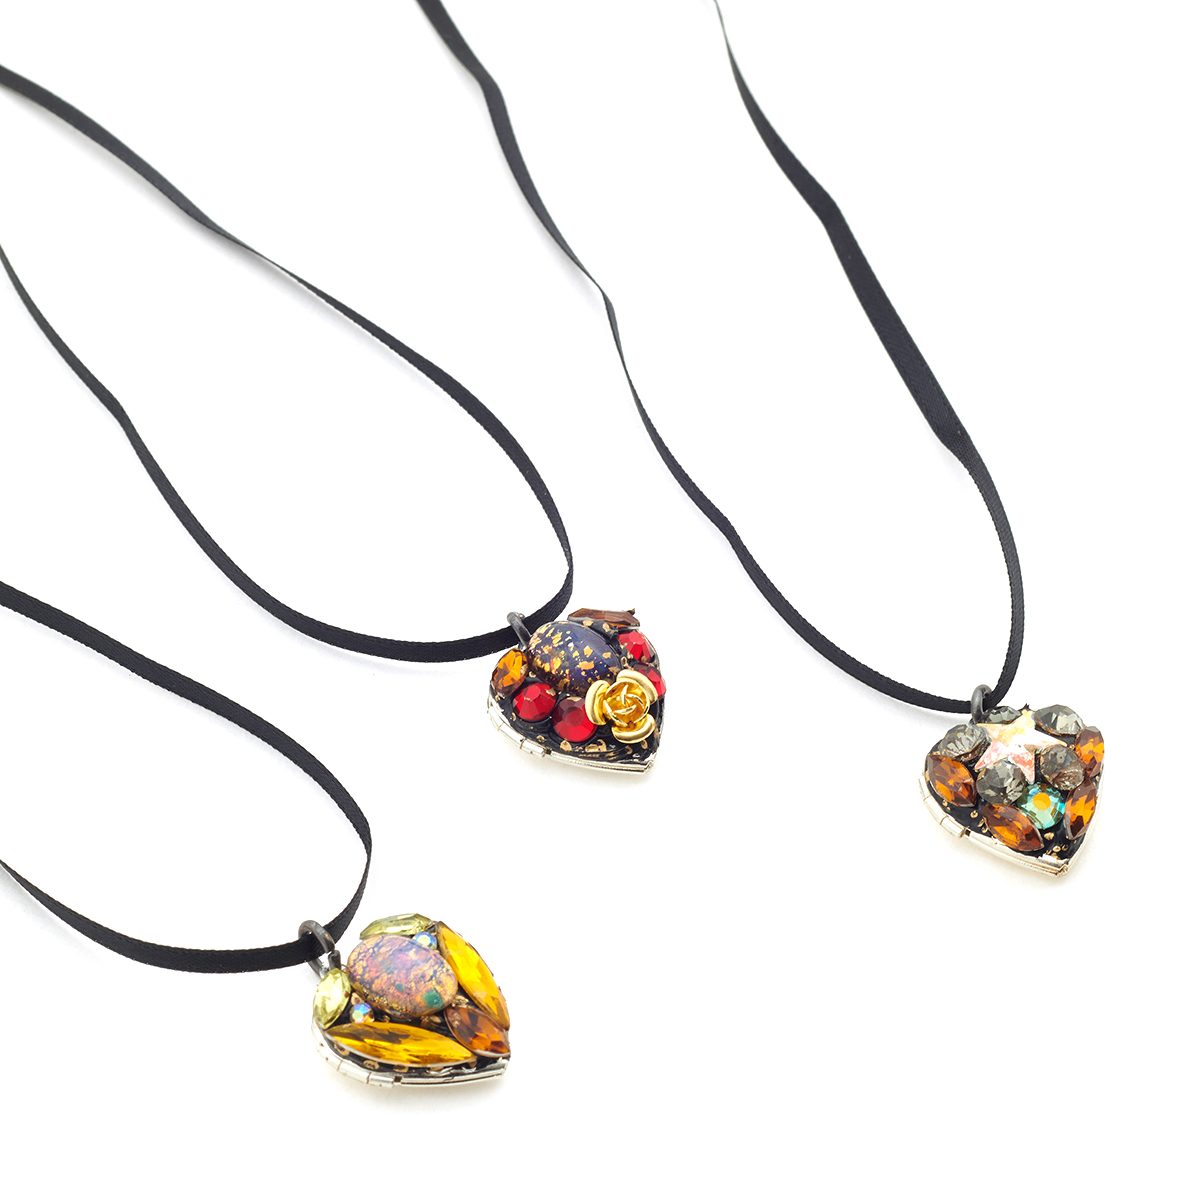 Heart locket necklace by Annie Sherburne - assorted